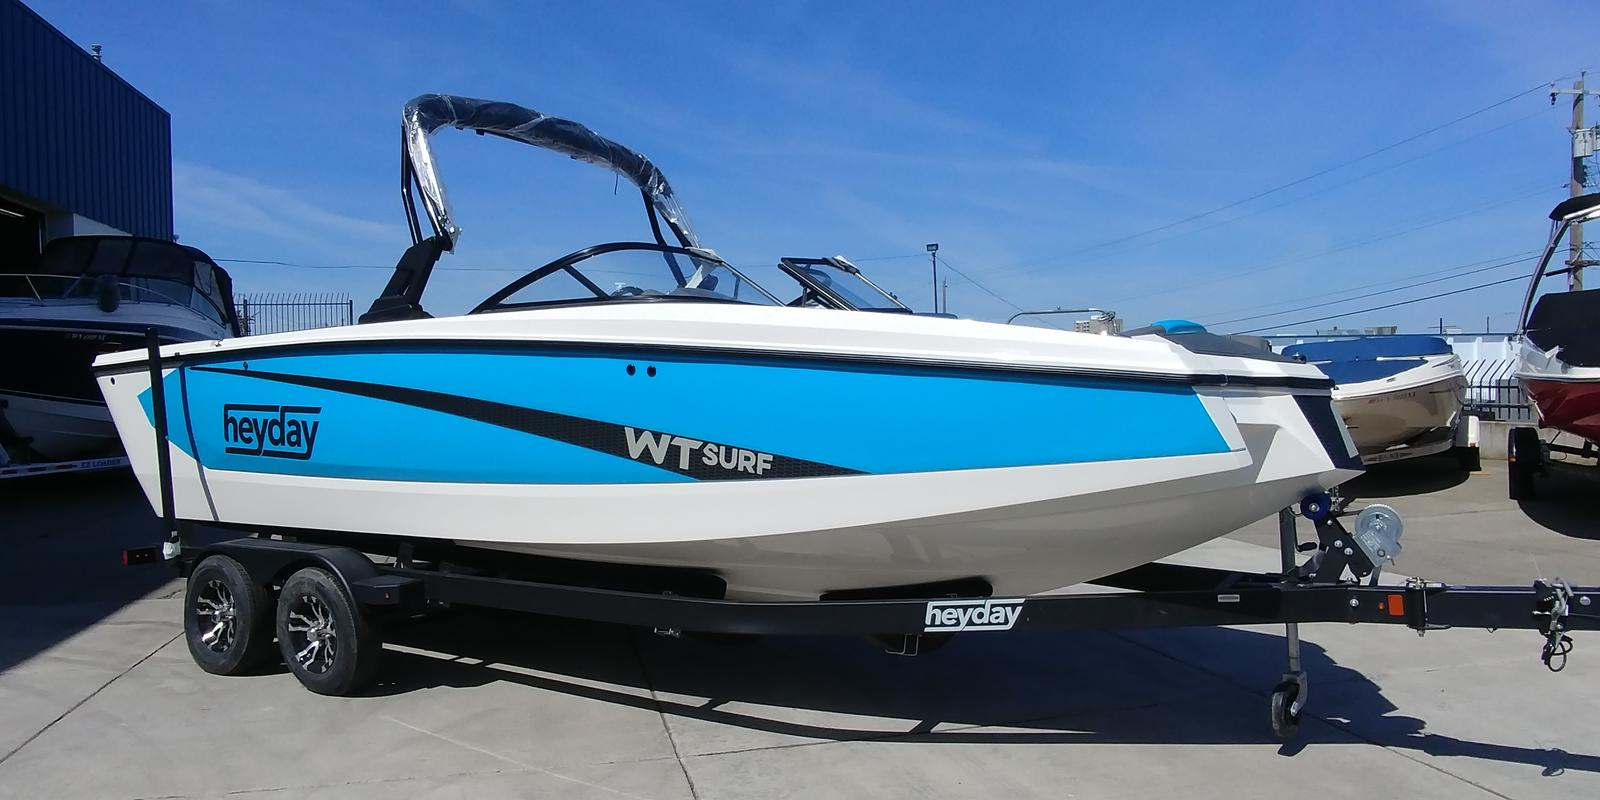 For Sale: 2019 Heyday Wt-surf 26ft<br/>Trudeau's Sea Ray - Spokane